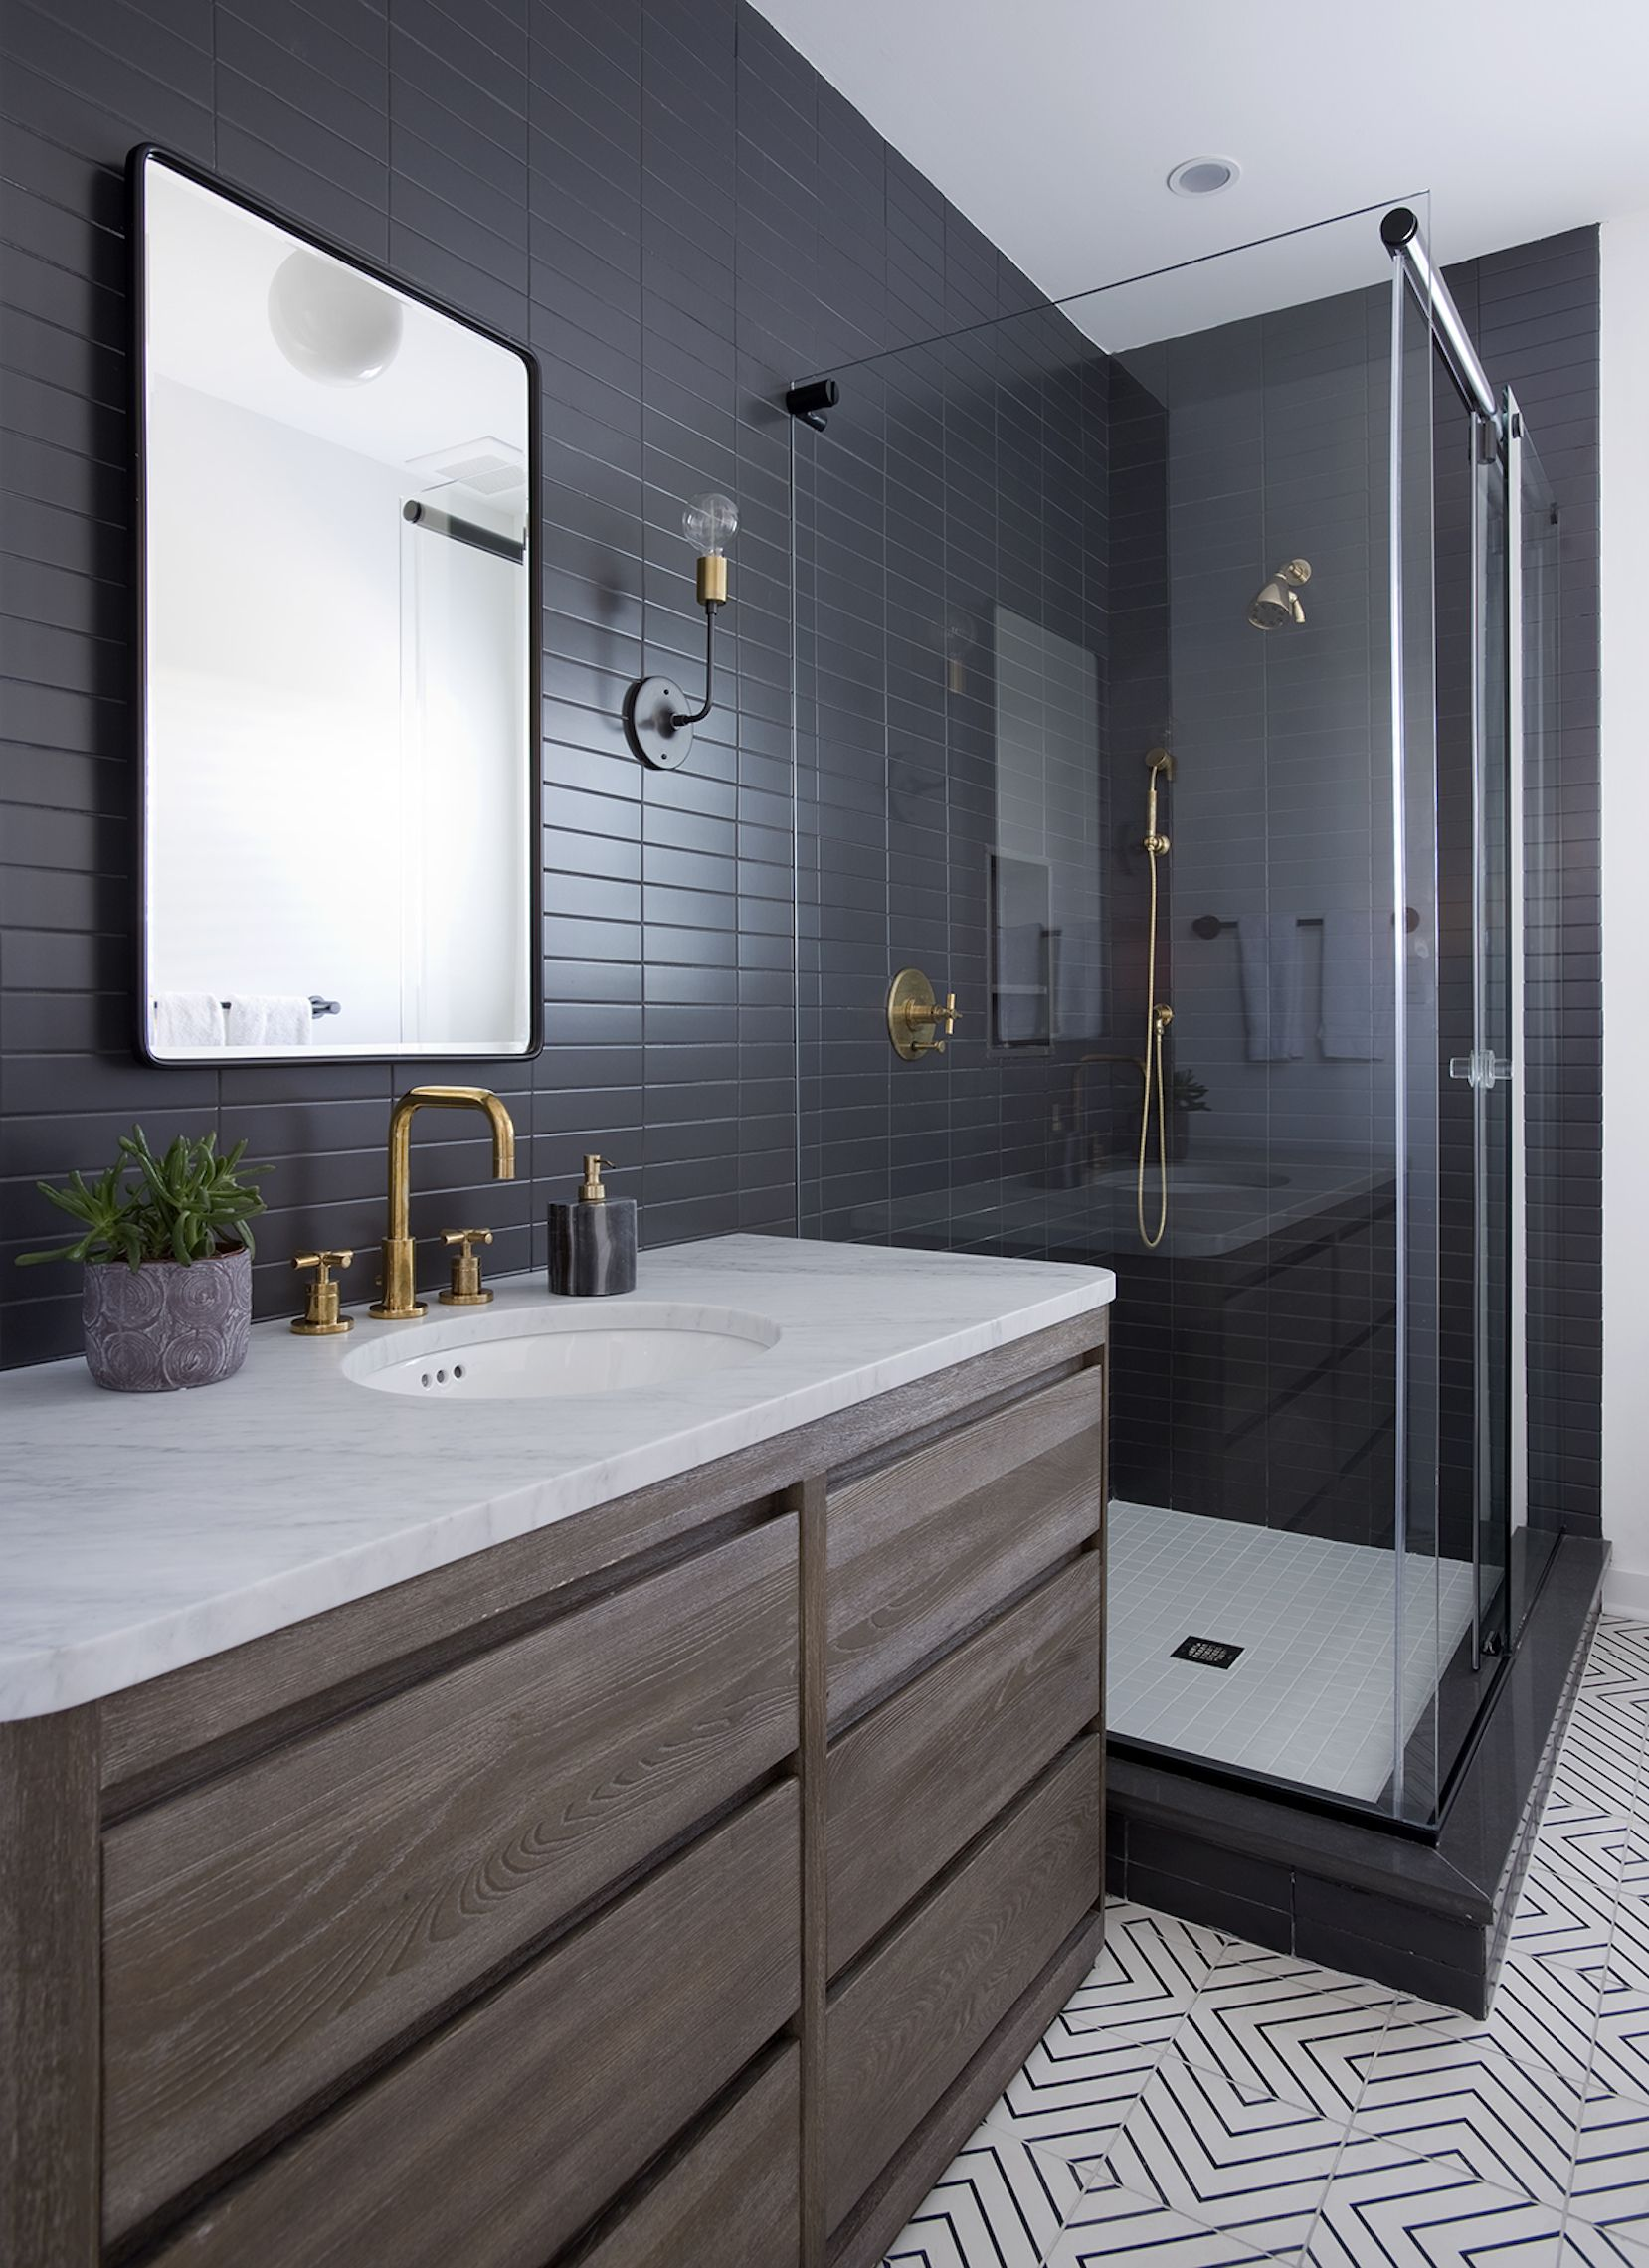 Black Tiled Bathroom Sleek Modern Dark Bathroom With Glossy Tiled Walls